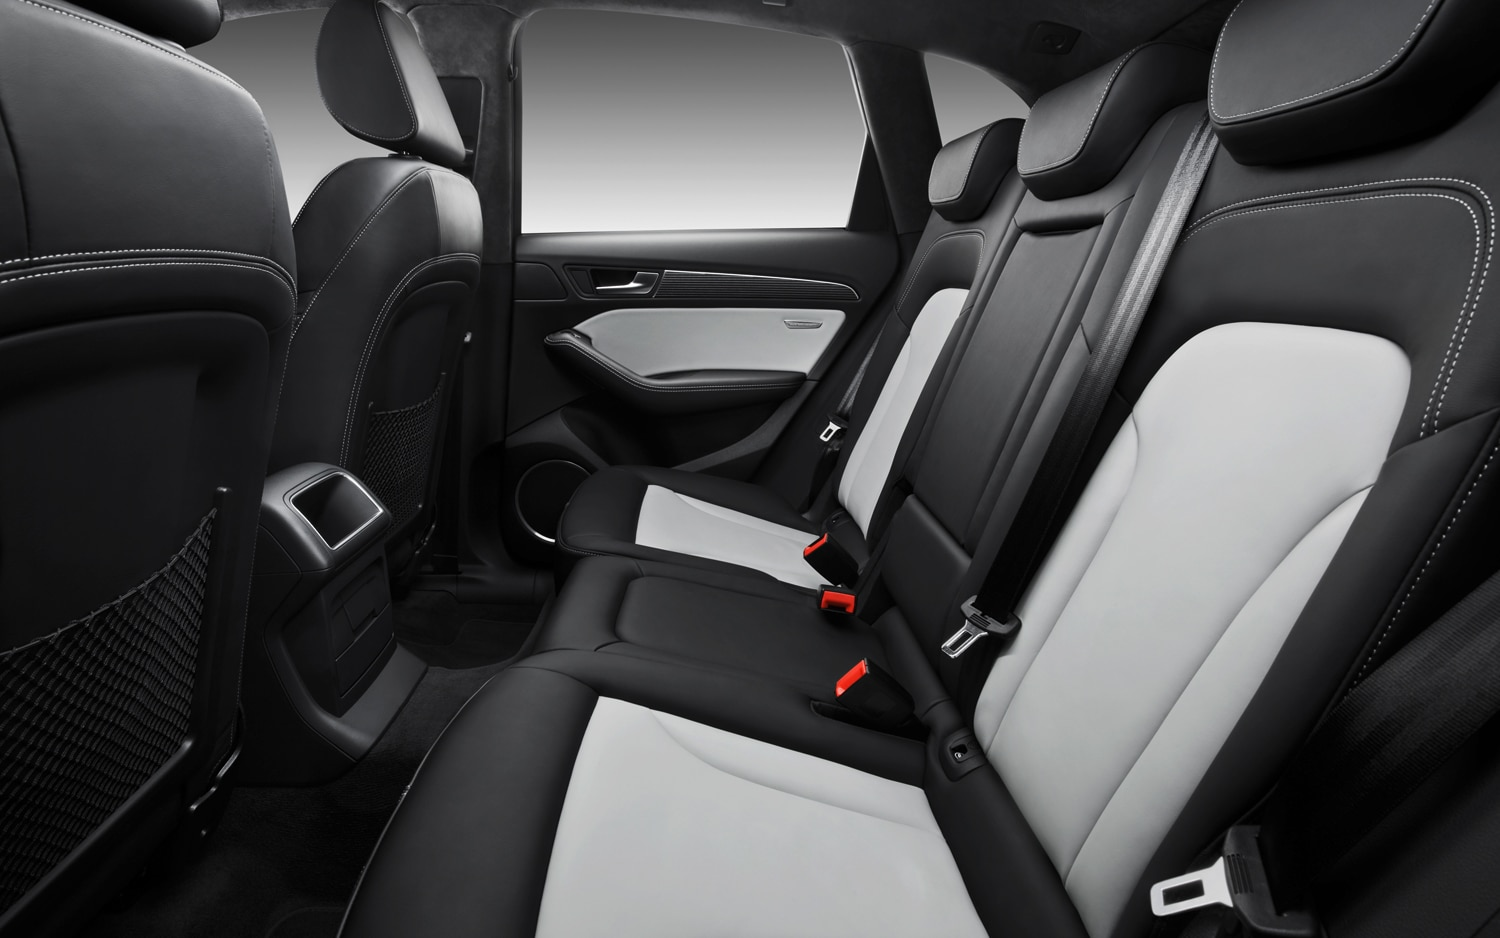 2013 Audi Q5 Rear Seating